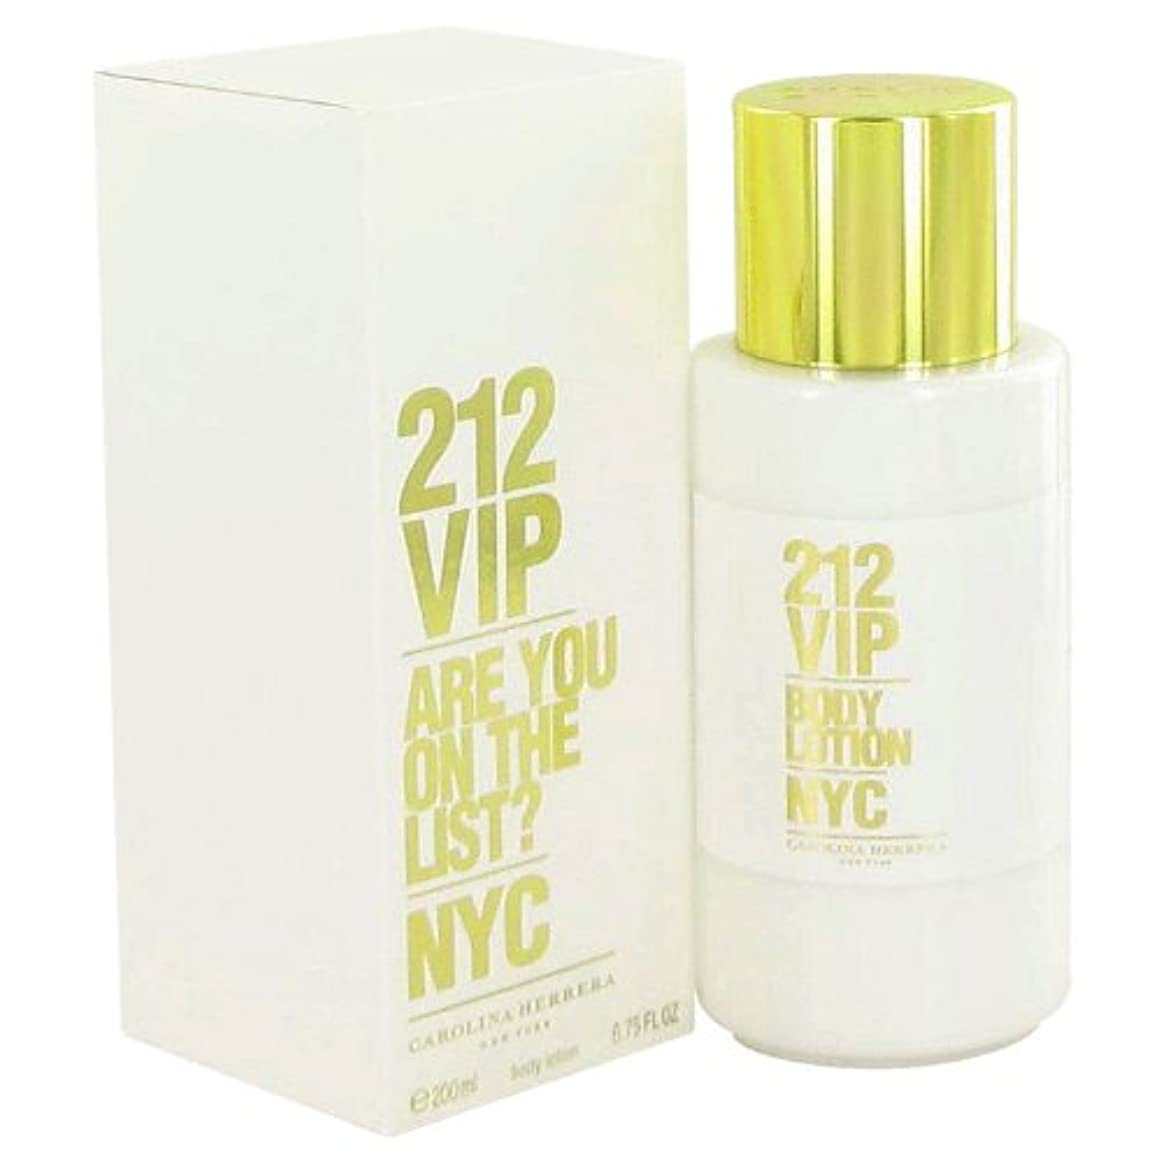 温度ばかげた例212 Vip Body Lotion By Carolina Herrera